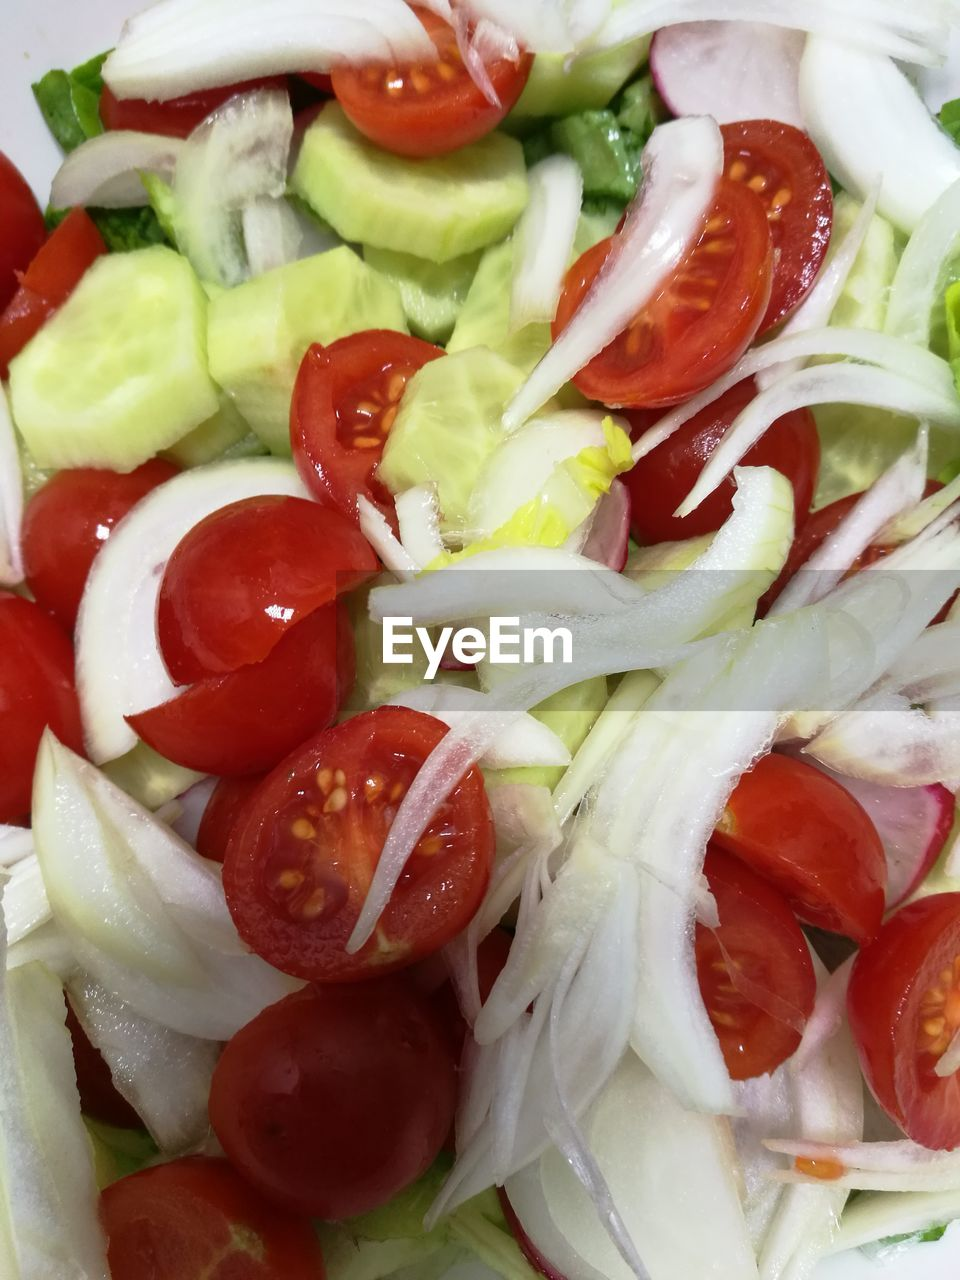 salad, tomato, vegetable, food, food and drink, healthy eating, freshness, slice, no people, indoors, ready-to-eat, close-up, cucumber, red bell pepper, feta cheese, backgrounds, greek food, day